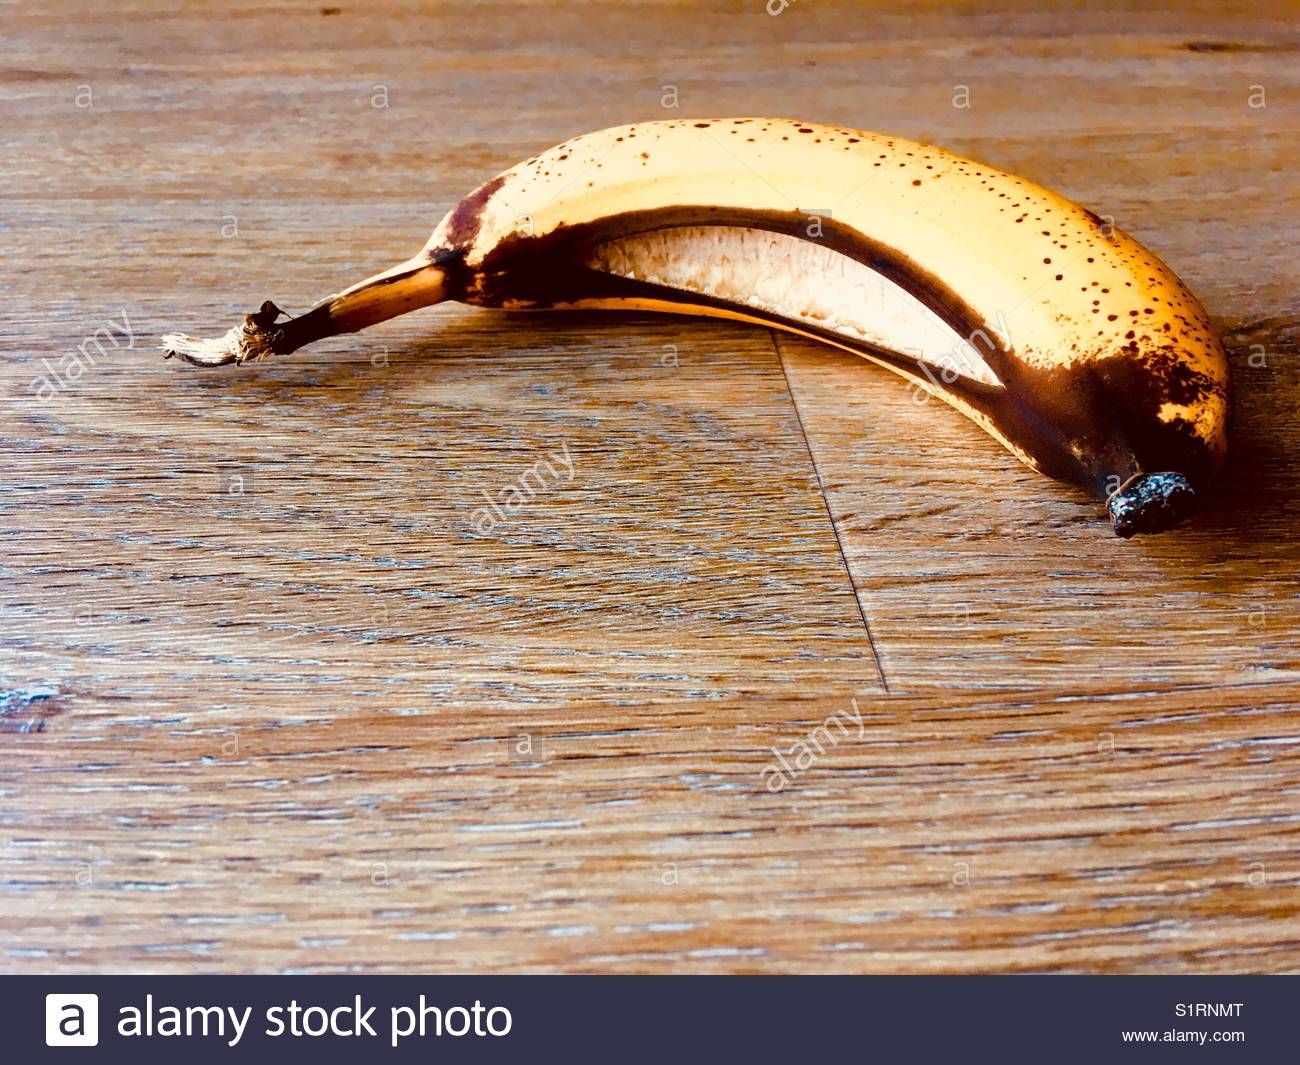 Banana with split skin - Stock Image